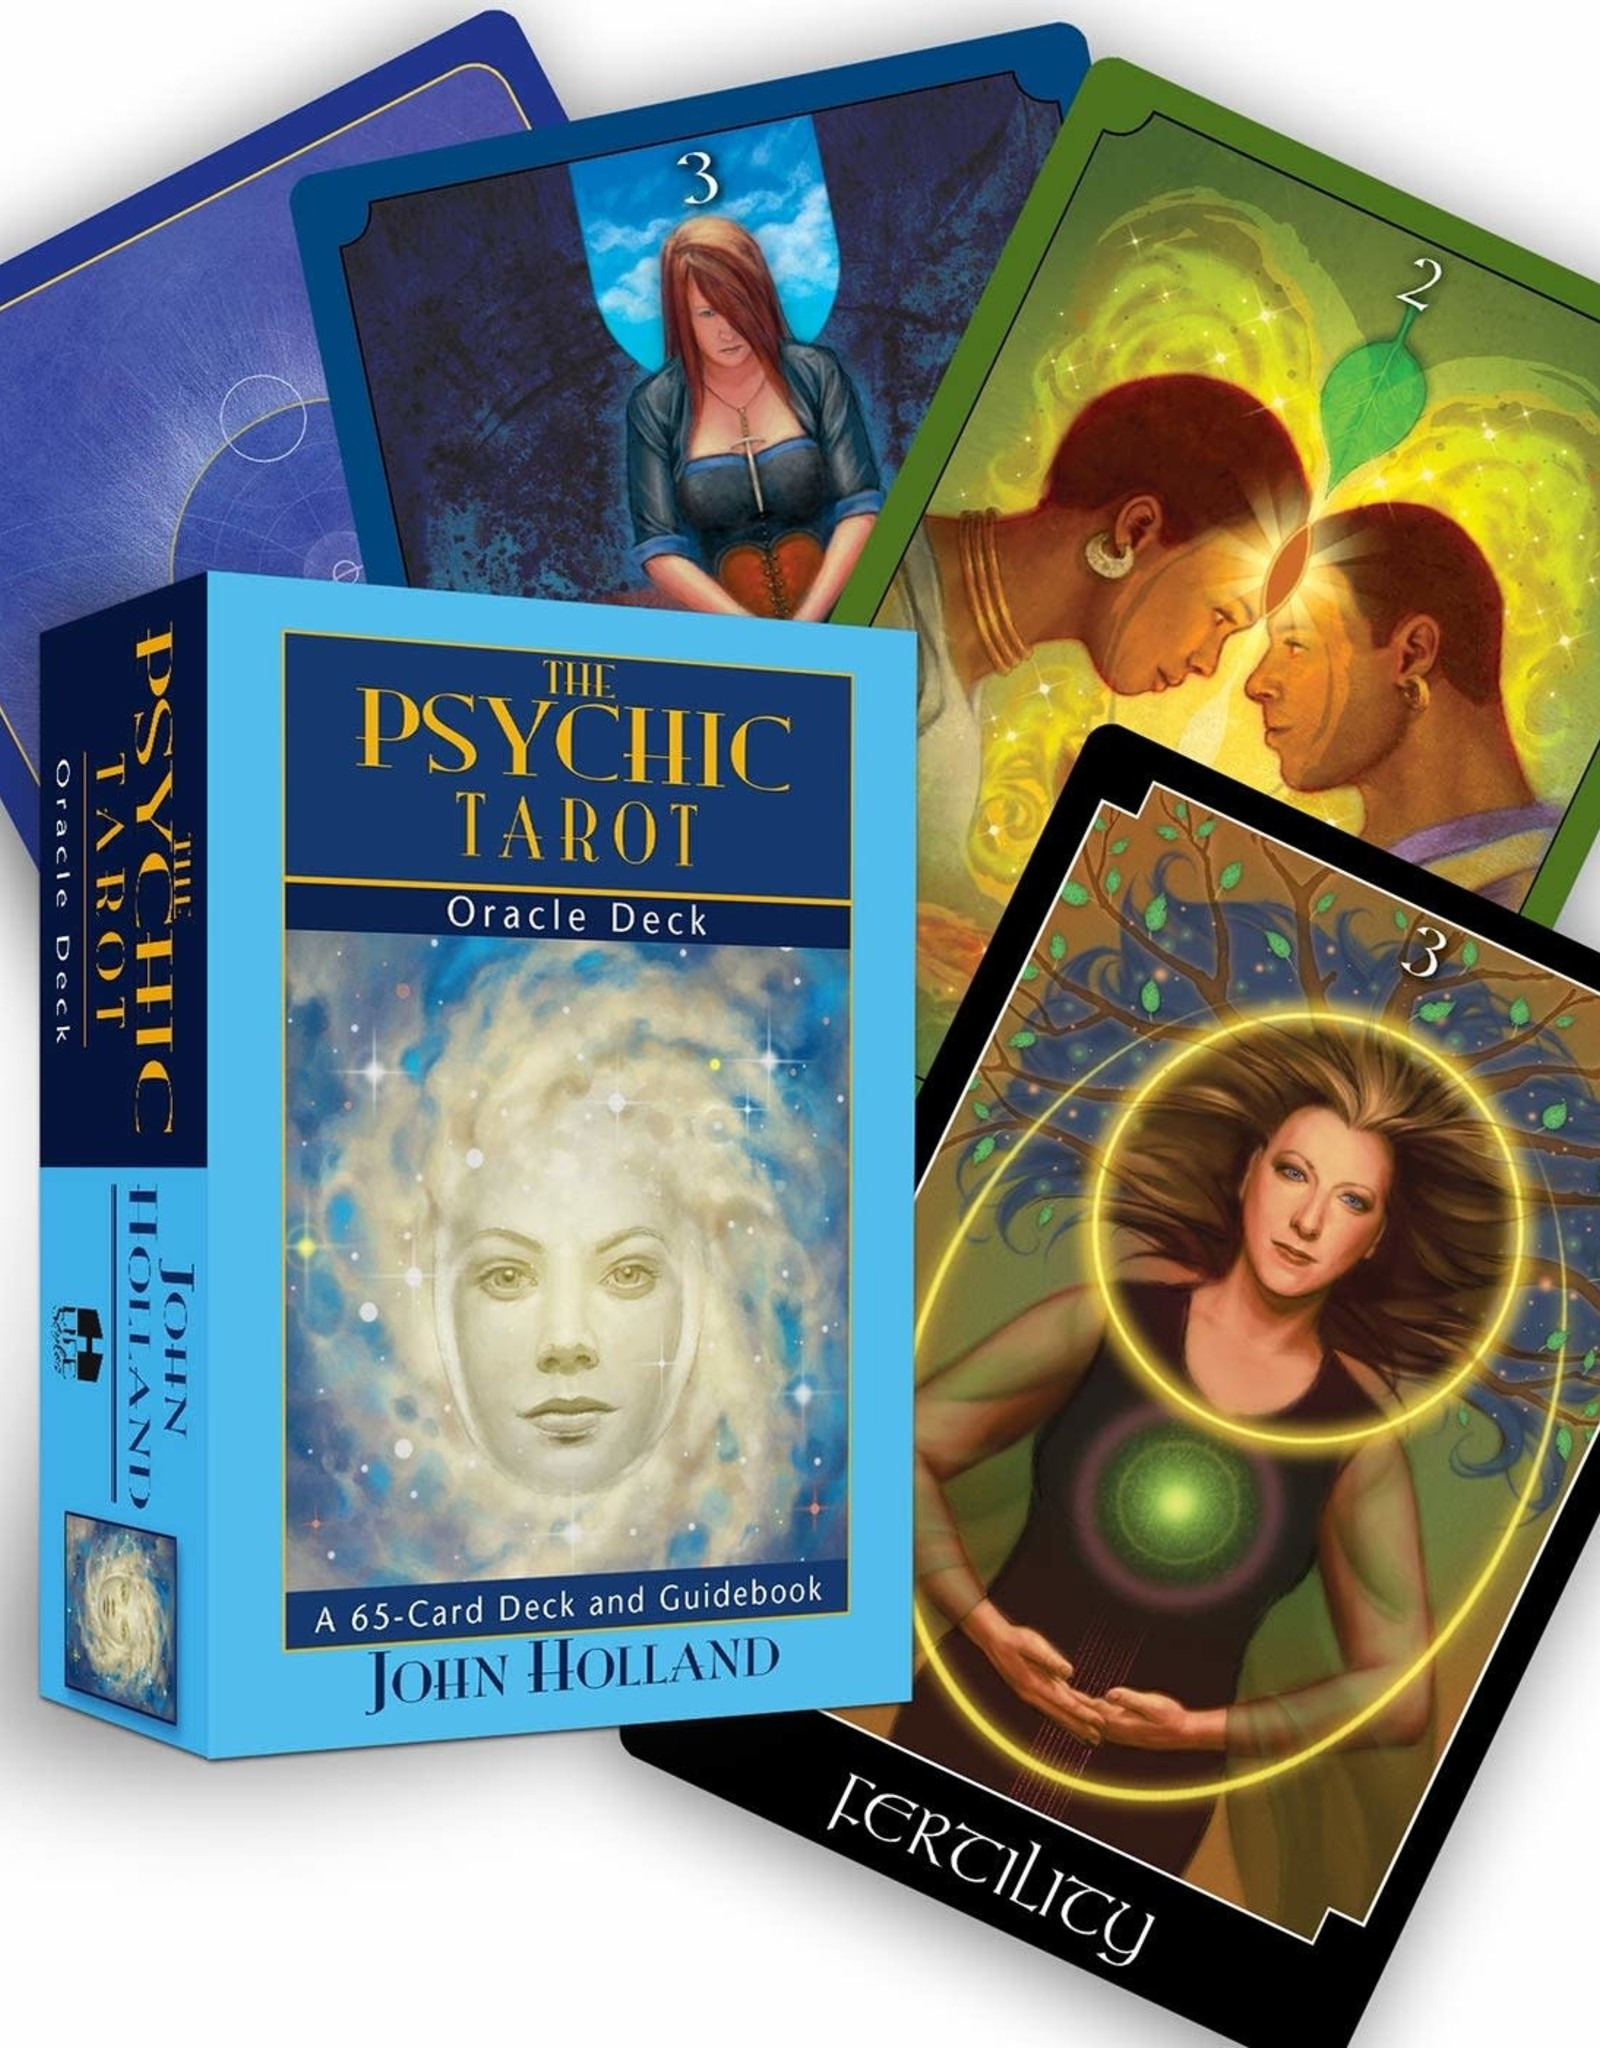 The Psychic Tarot Deck